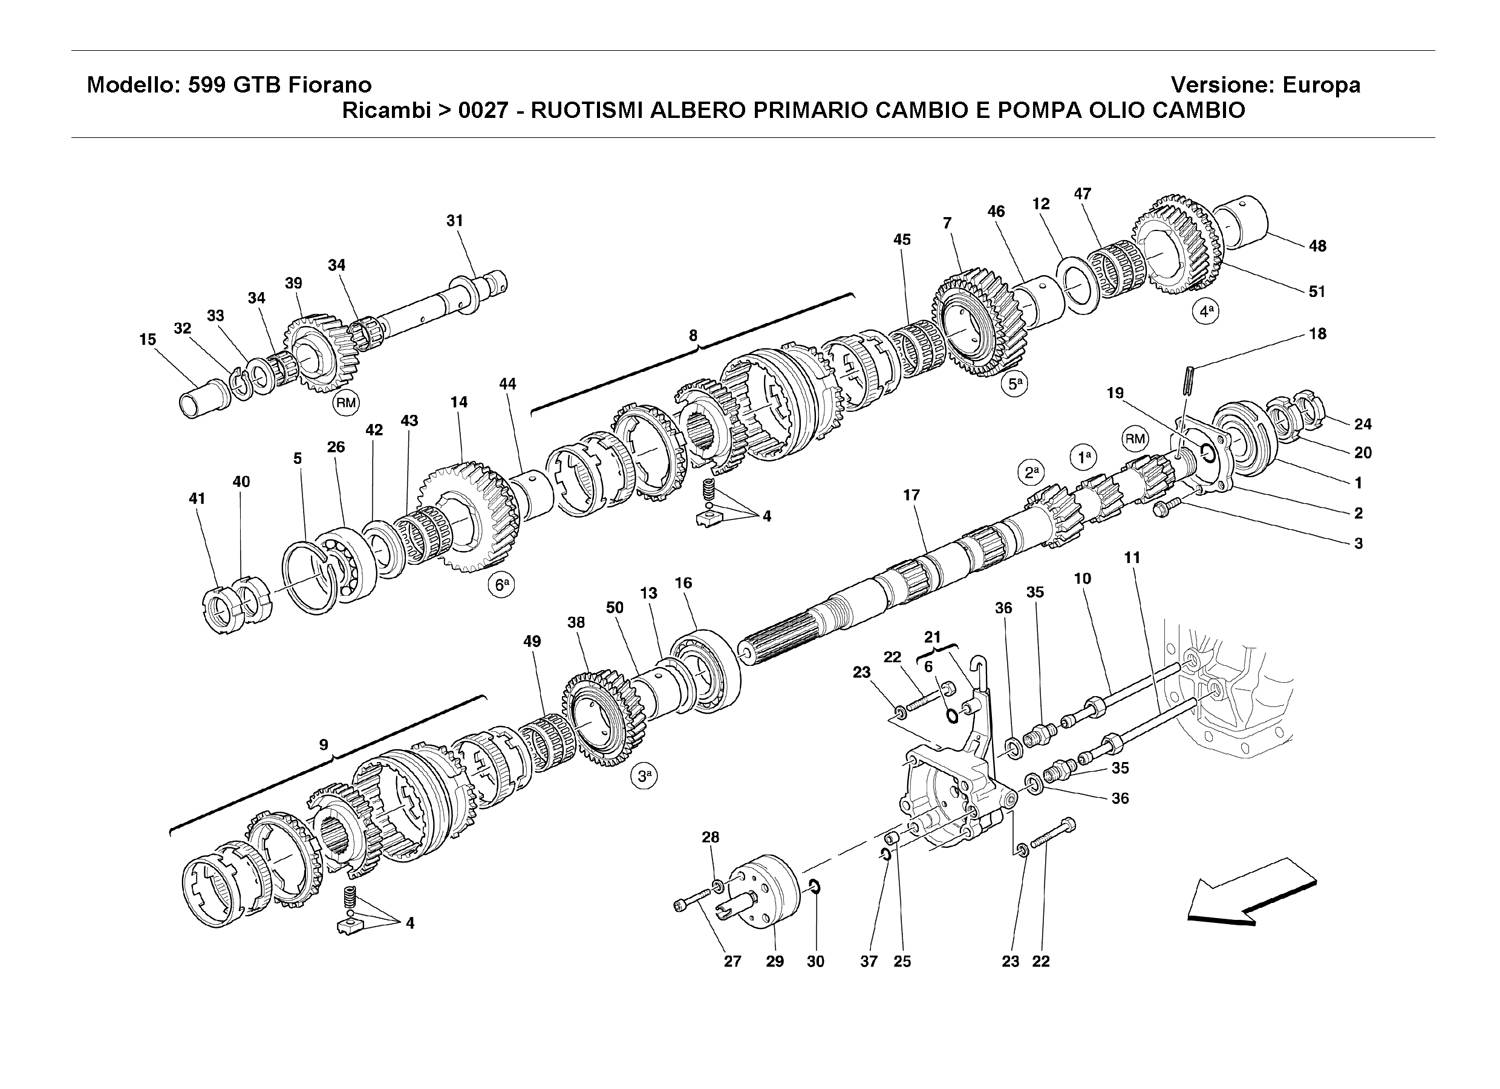 MAIN SHAFT GEARS AND CLUTCH OIL PUMP